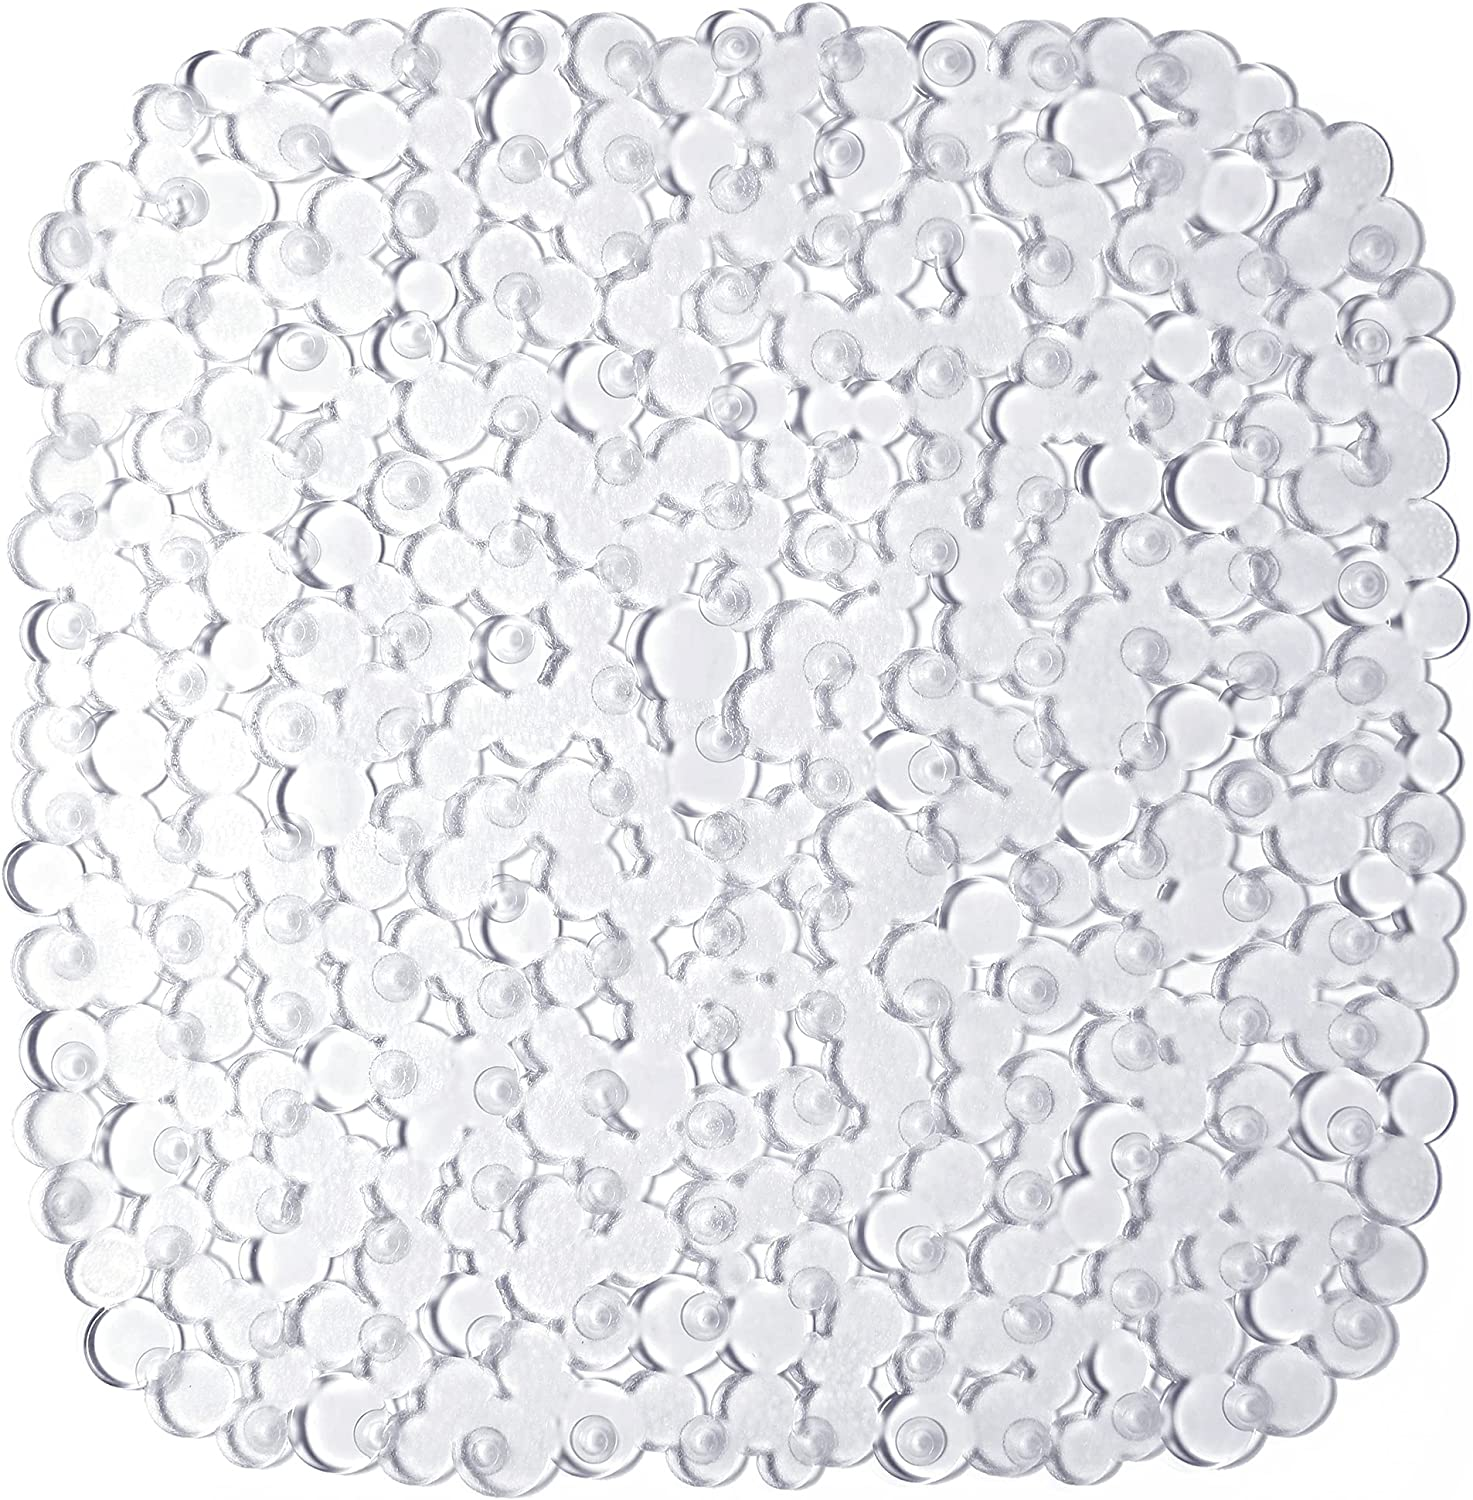 Bathsafe Inexpensive Oval Corner Square Pebbles Bathtub 21x21 for Safety and trust Mat Shower